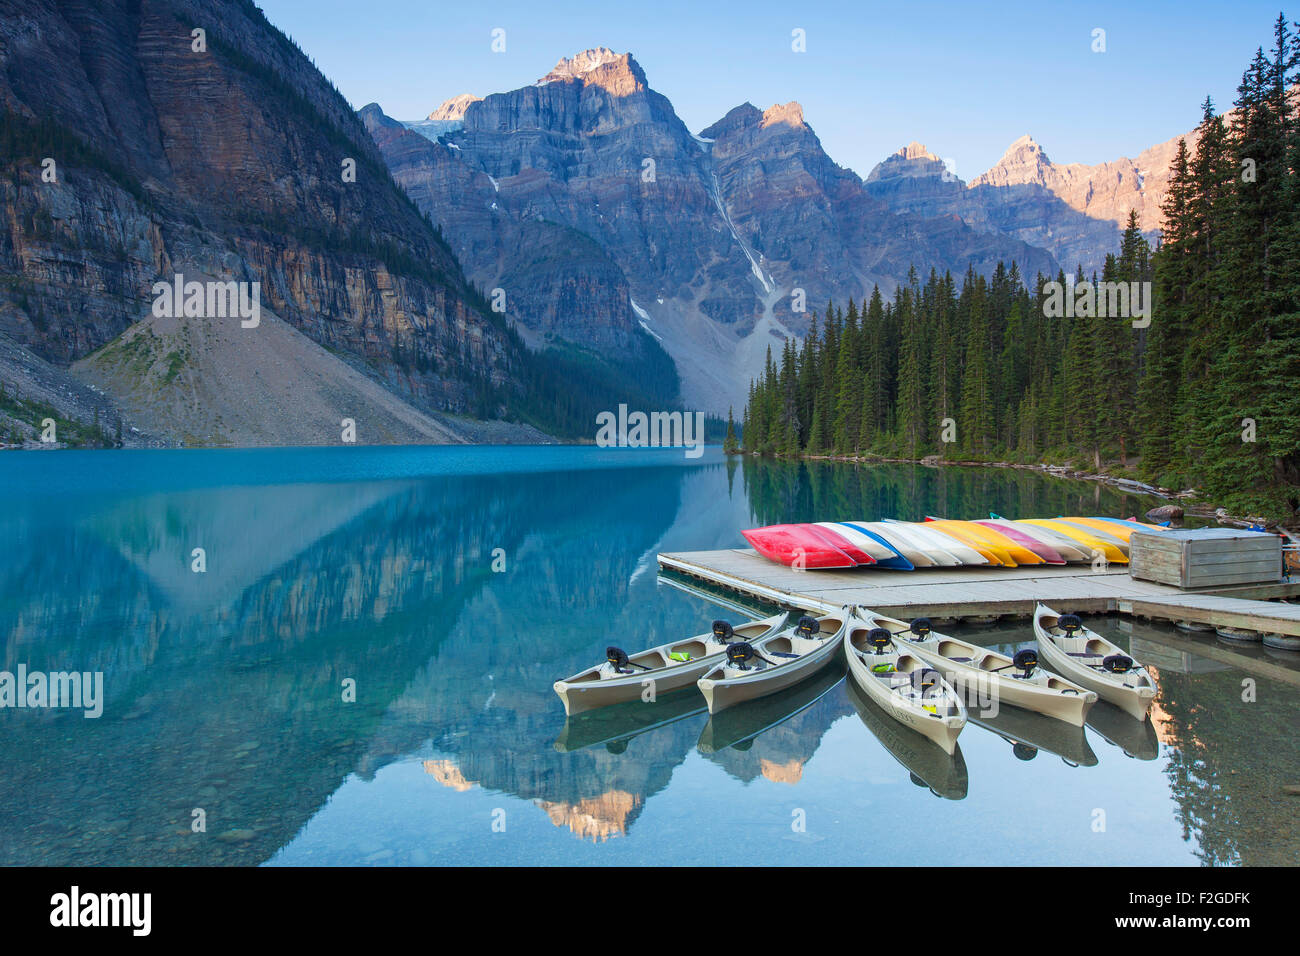 Canoes at Moraine Lake in the Valley of the Ten Peaks, Banff National Park, Alberta, Canada - Stock Image